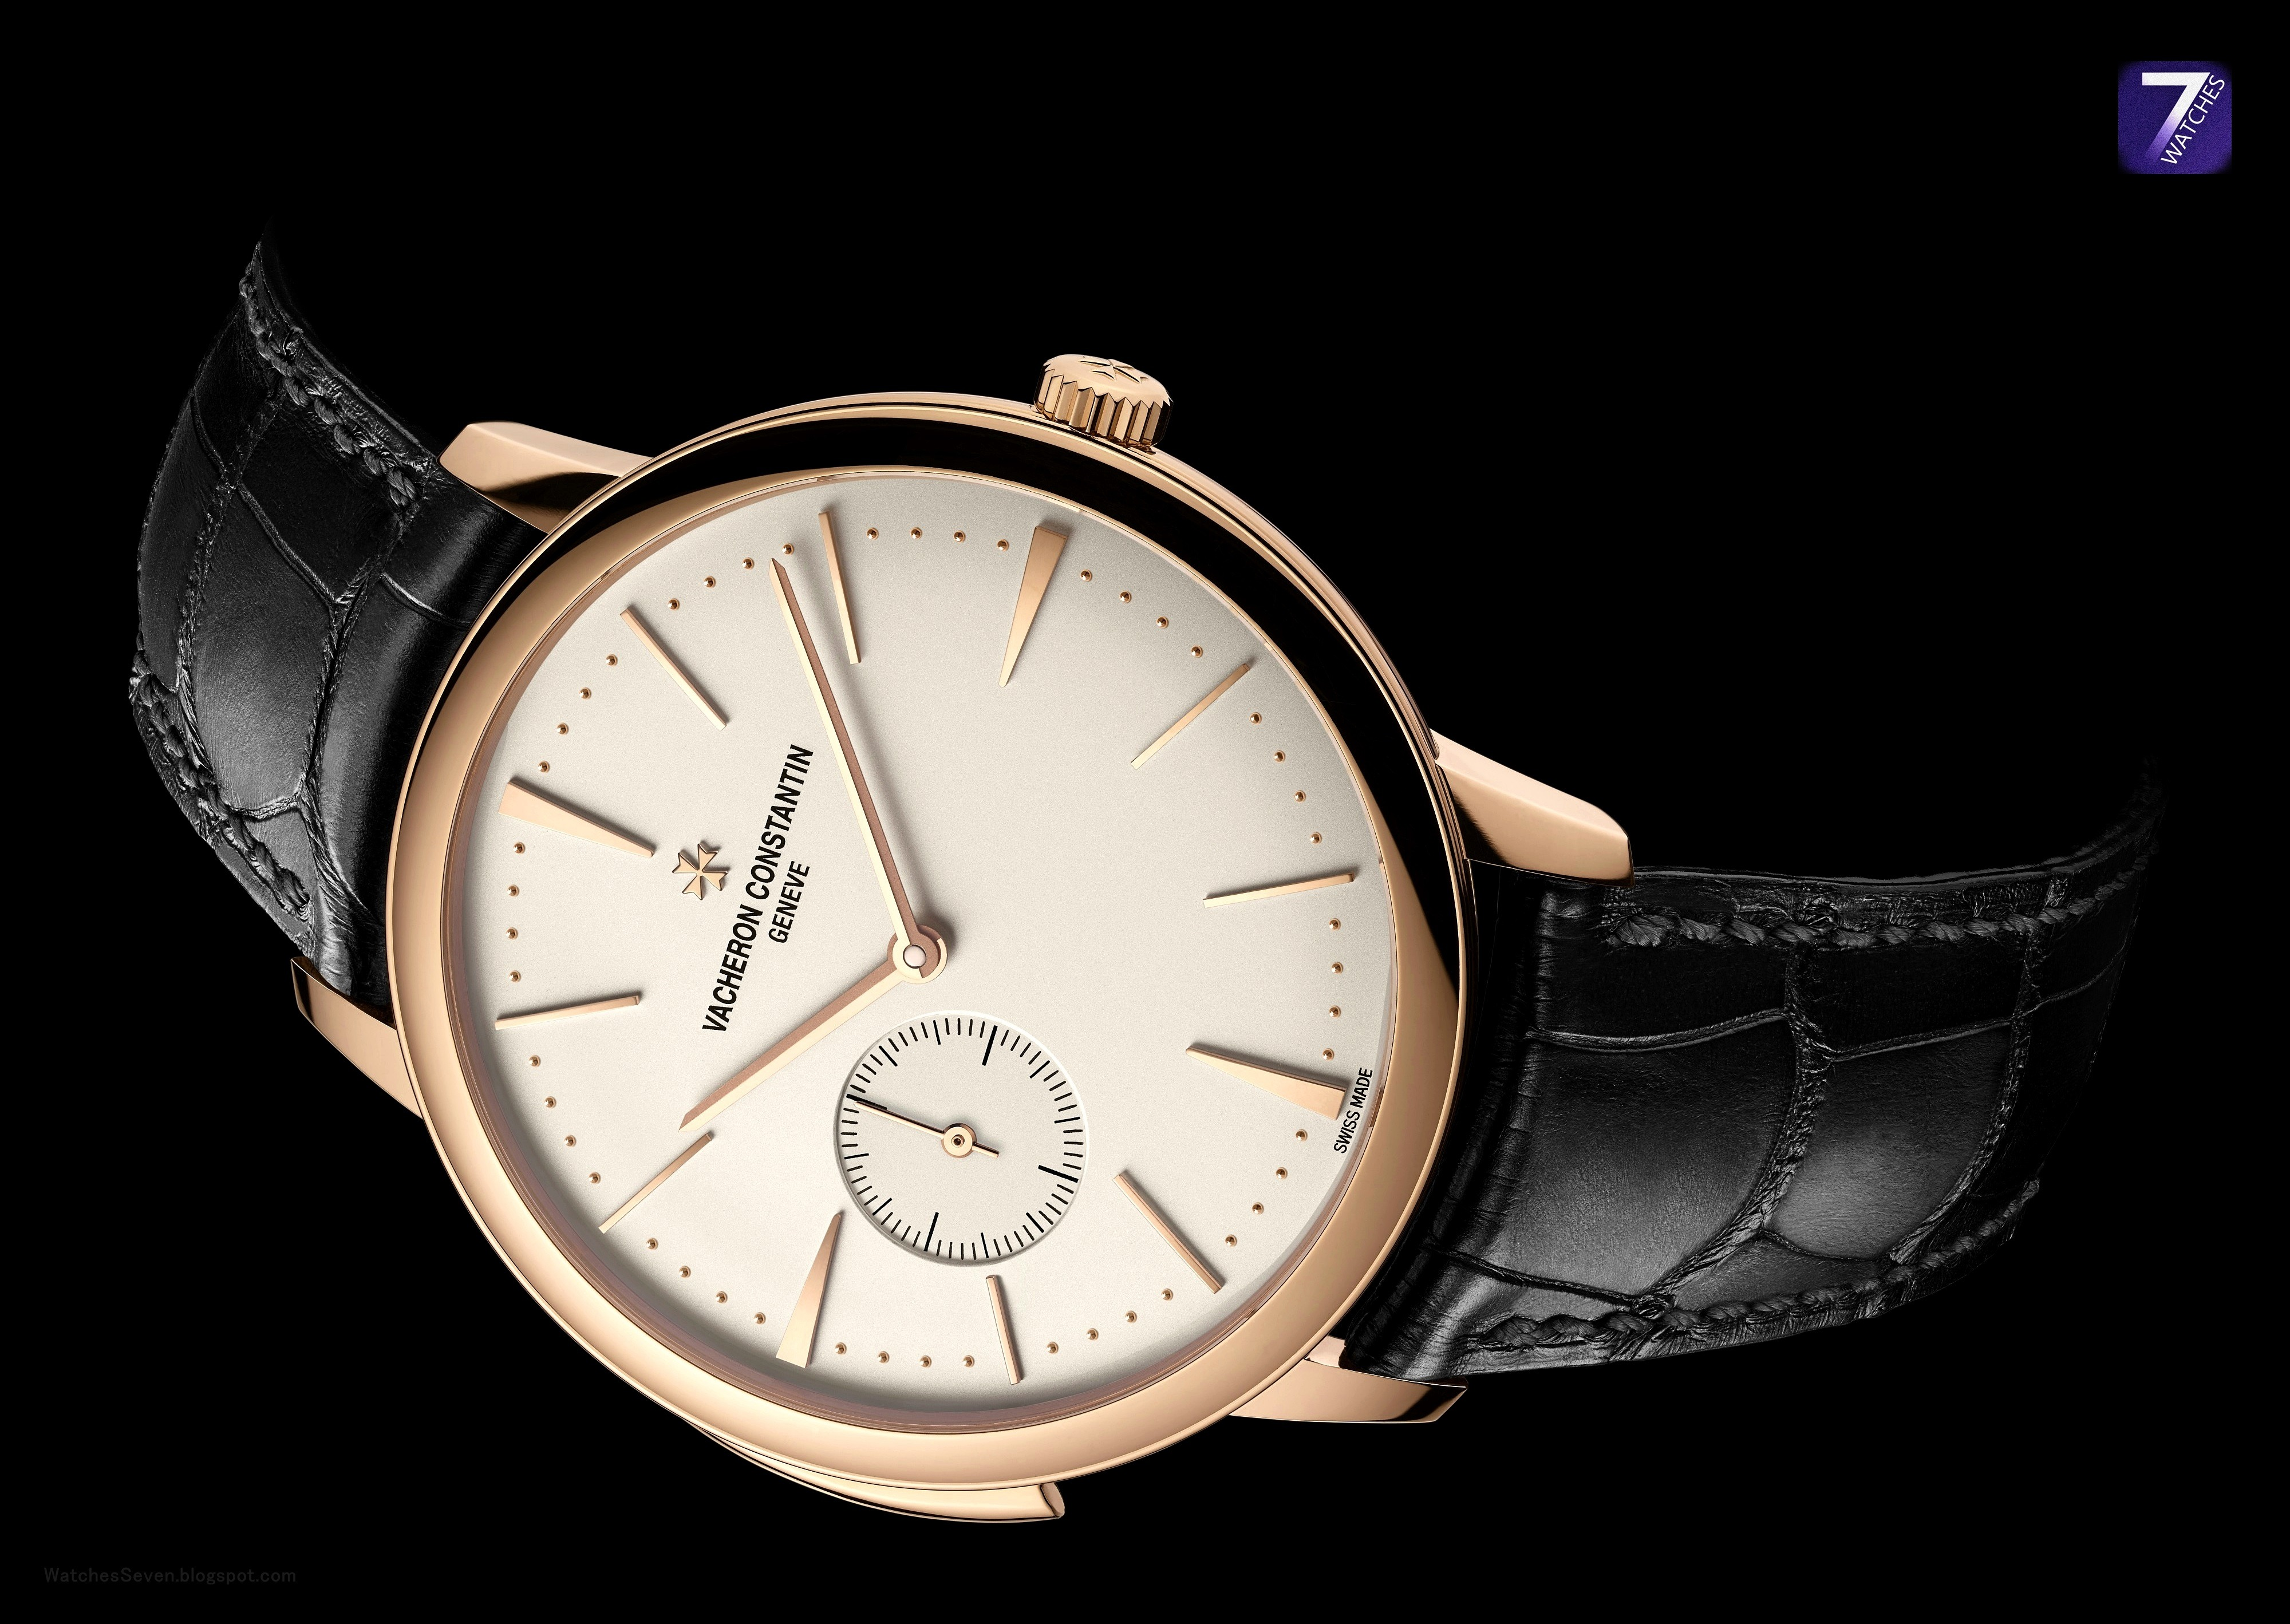 Watches 7 vacheron constantin traditionnelle platinum ultra thin automatic for Vacheron constantin